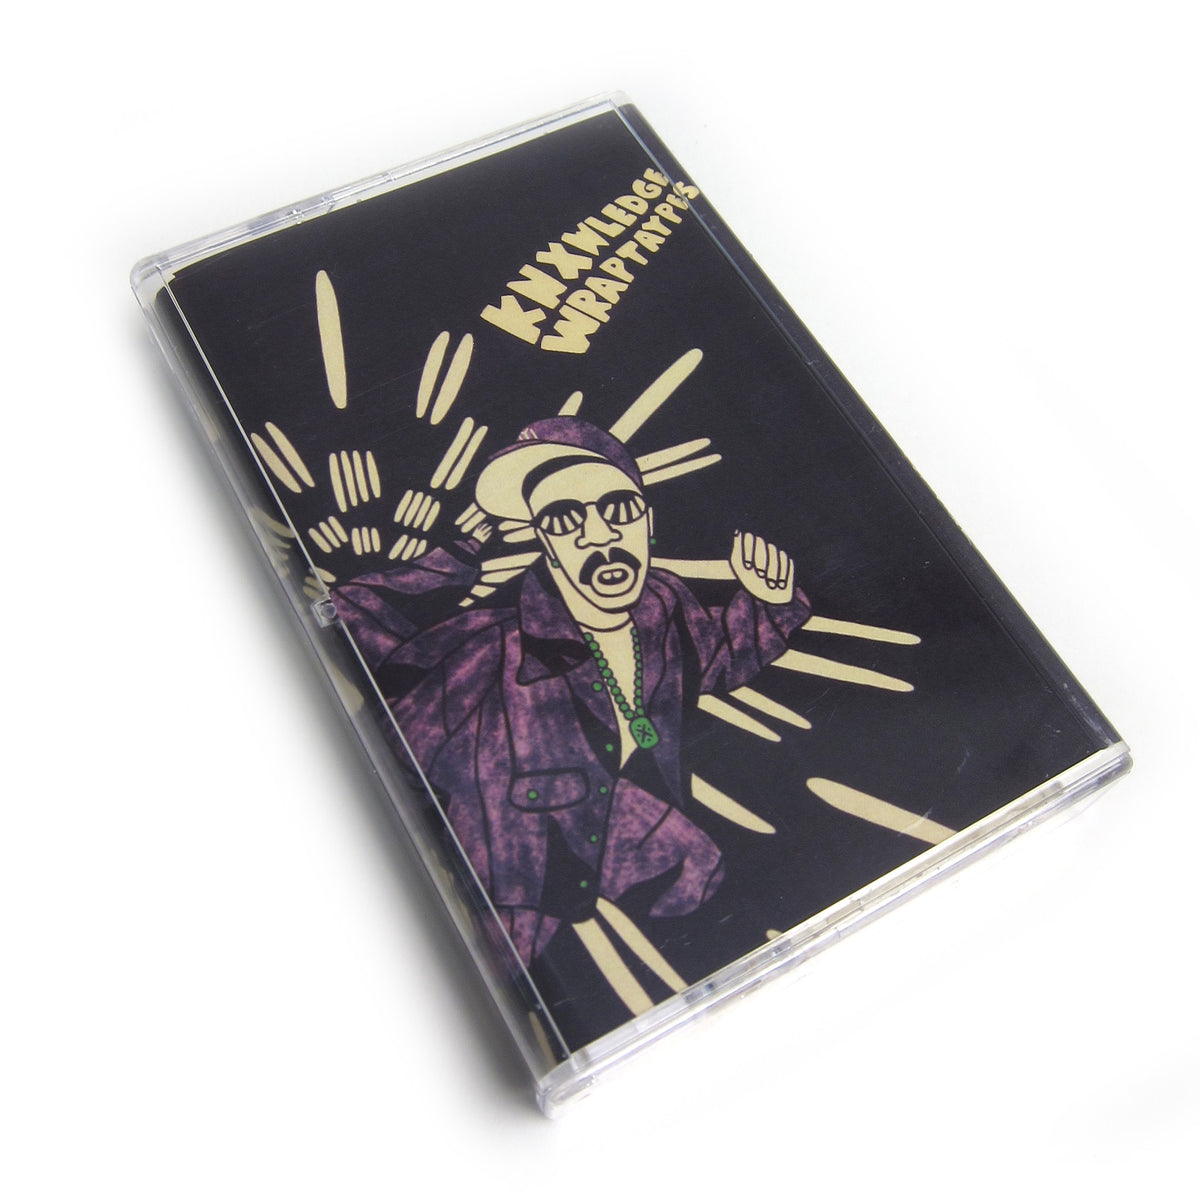 Knxwledge: Wraptaypes Cassette